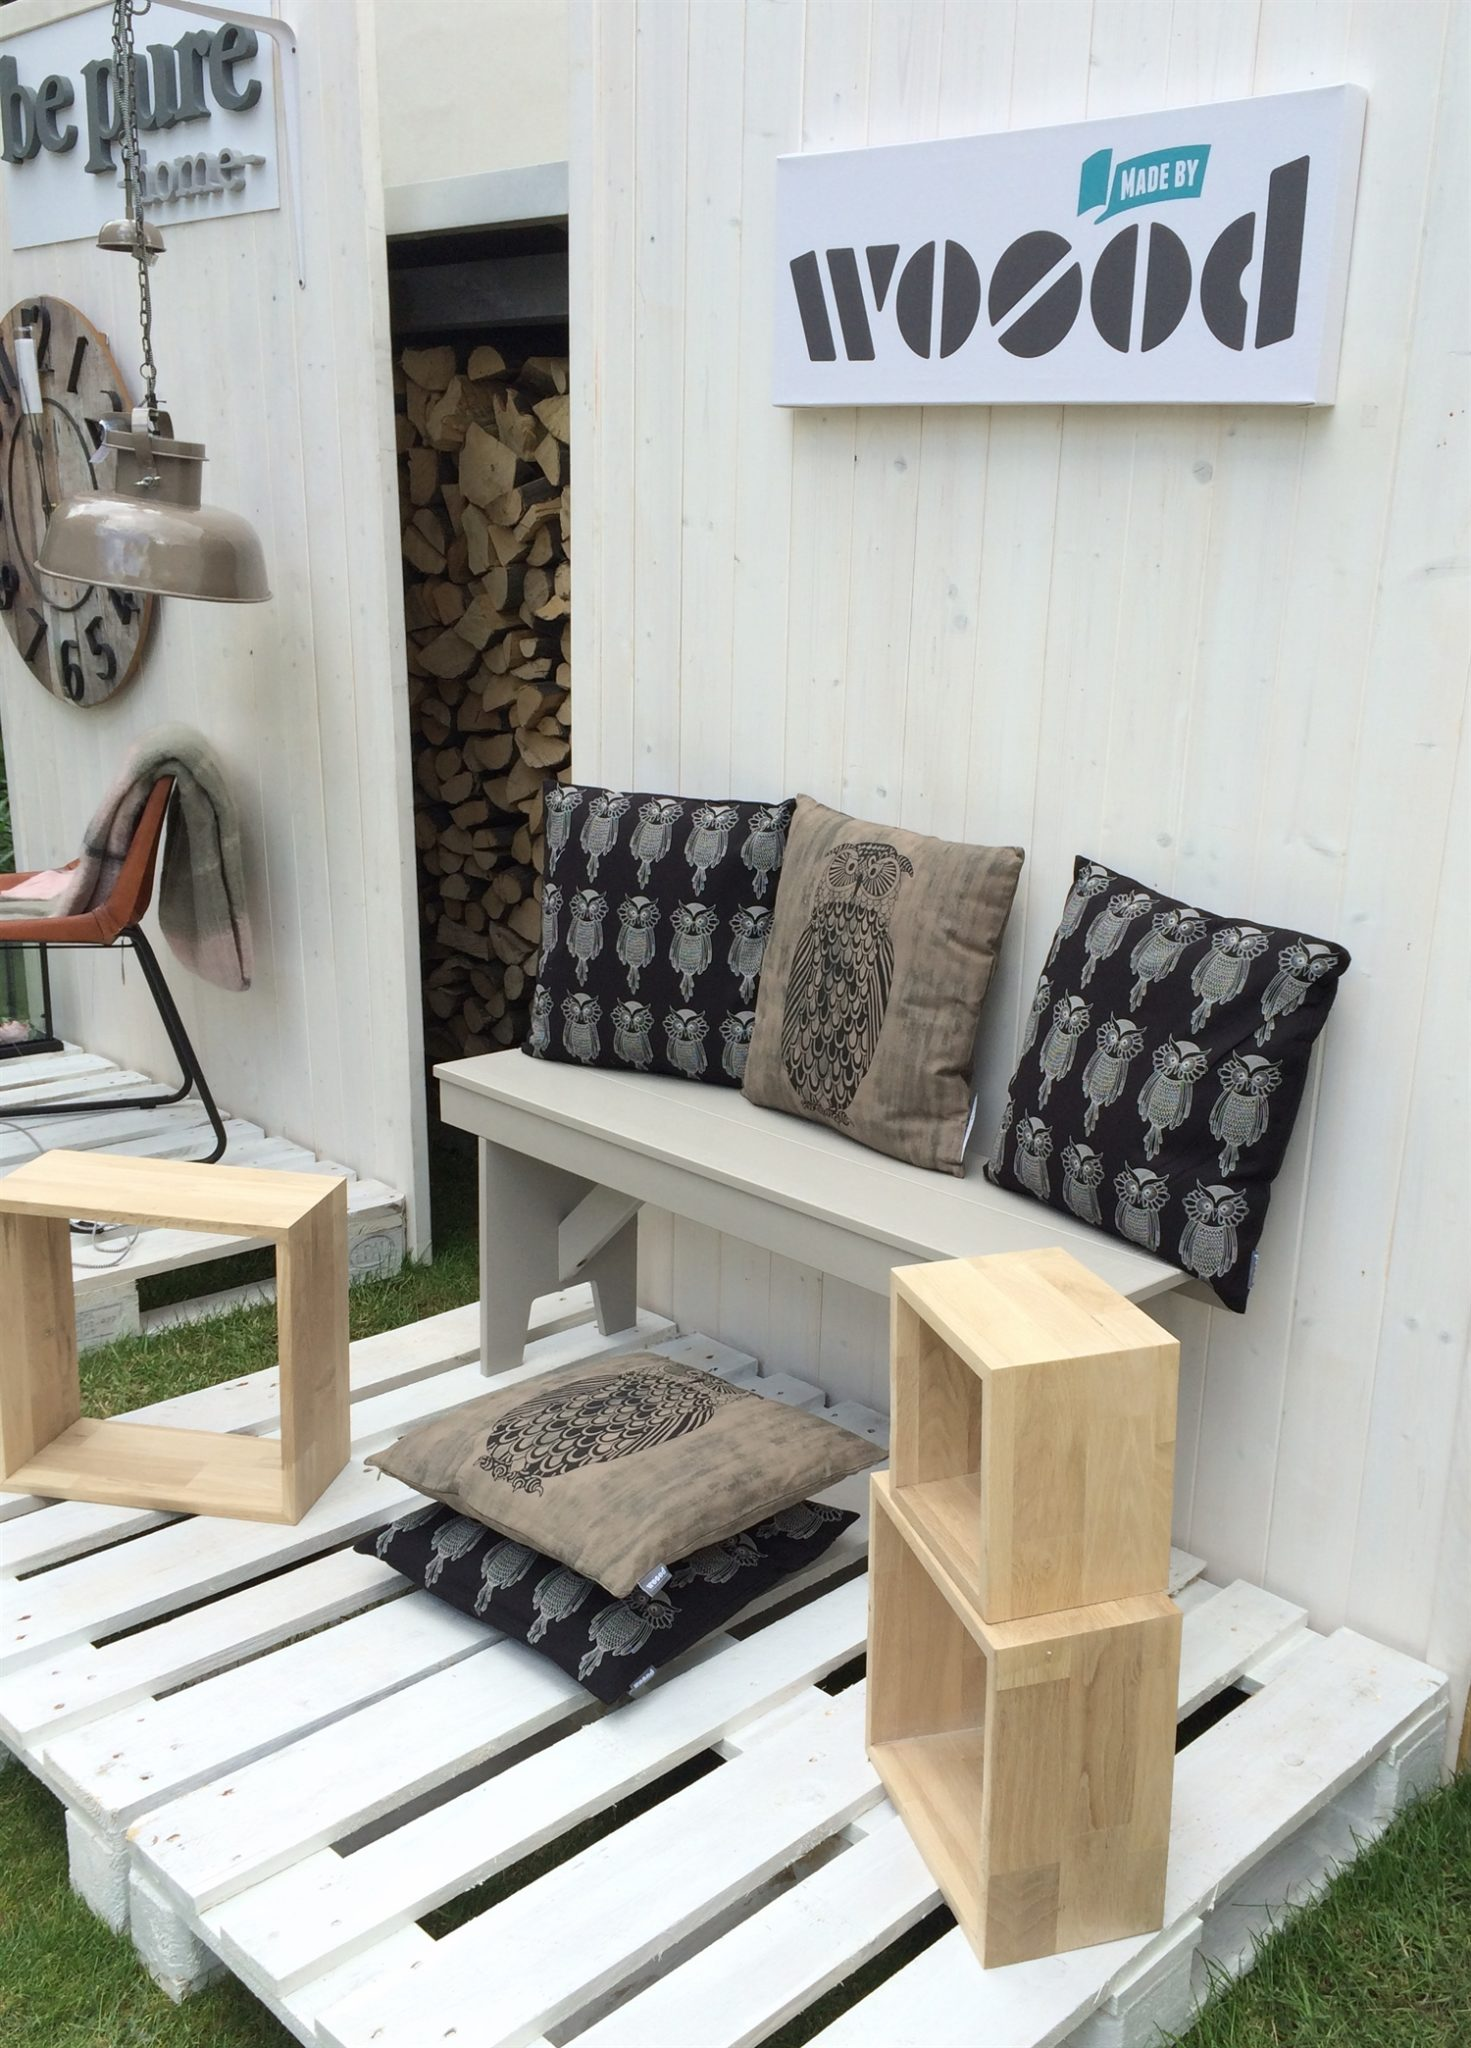 10 bm housing dutch design nterior decorating wooden furniture projektowanie wnetrz urzadzanie domu holenderskie meble